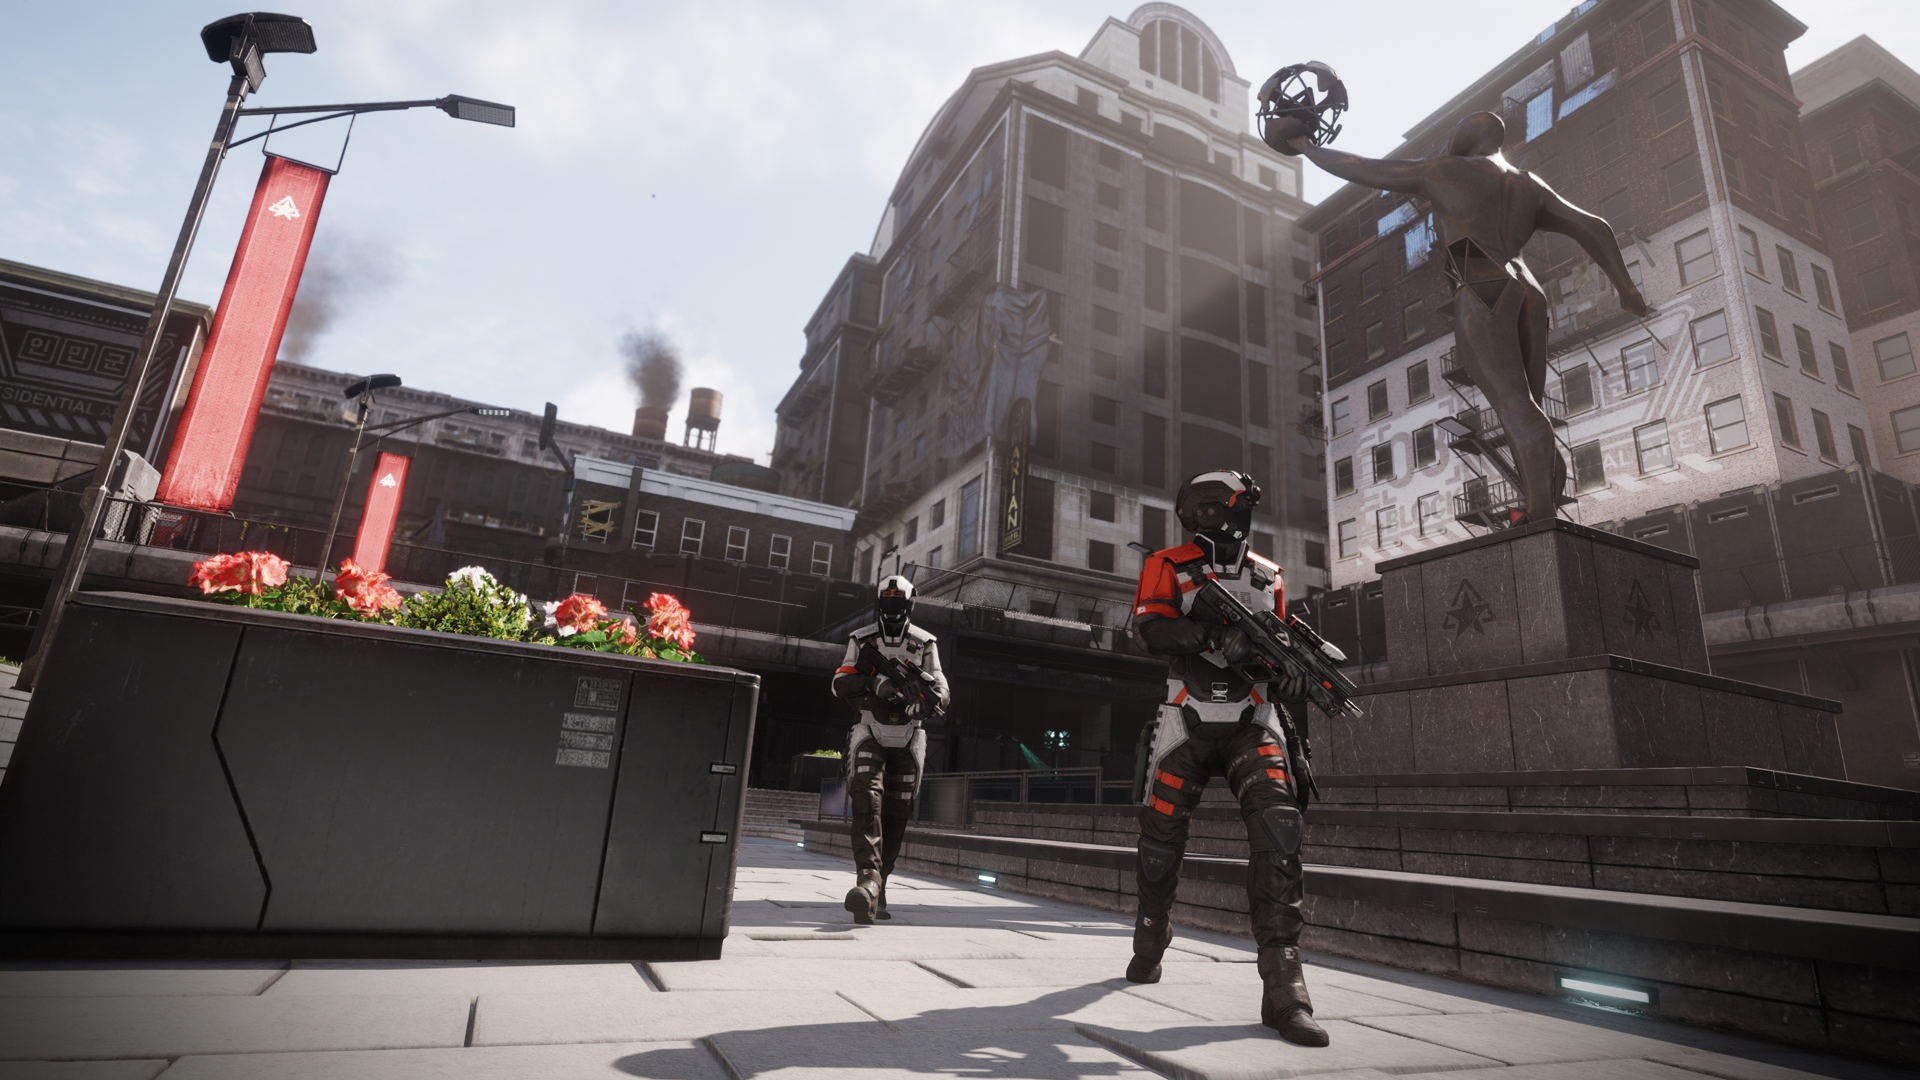 http://www.mihangame.com/wp-content/uploads/2016/04/MihanGame-Homefront-The-Revolution2.jpg